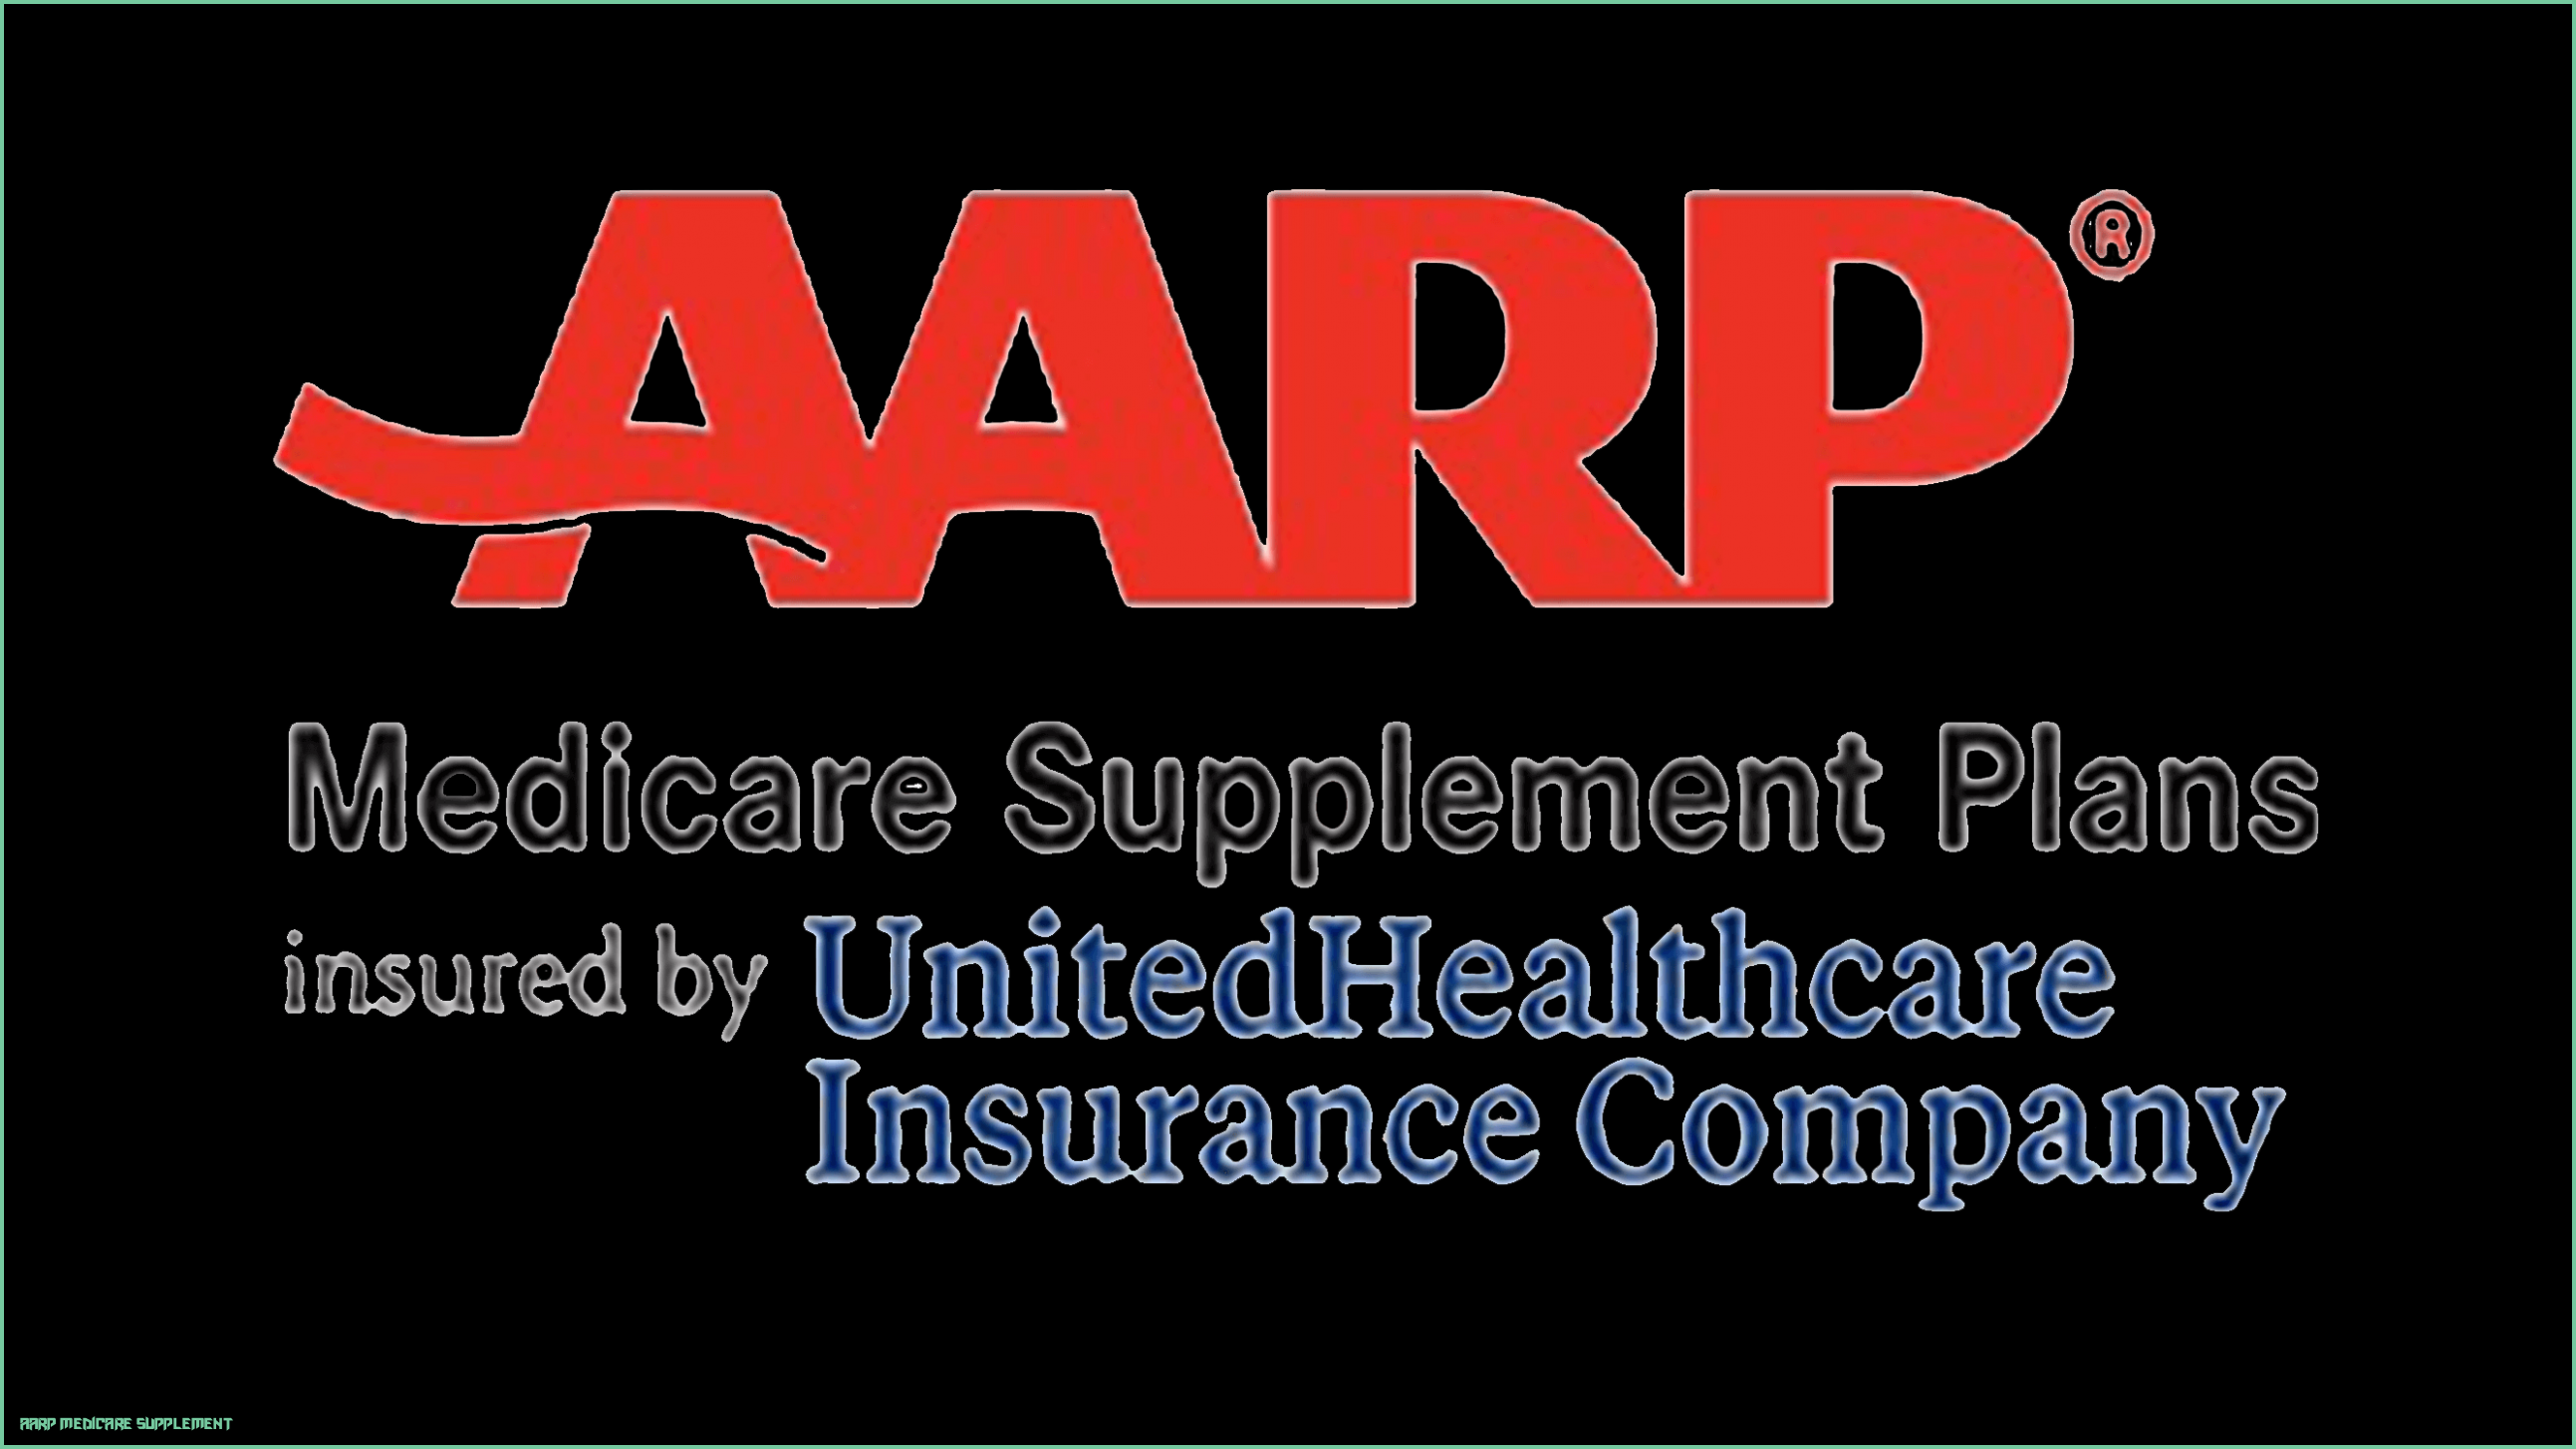 How Aarp Medicare Supplement Is Going To Change Your Business Strategies Aarp Medicare Supplement Medicare Supplement Medicare Medicare Supplement Plans